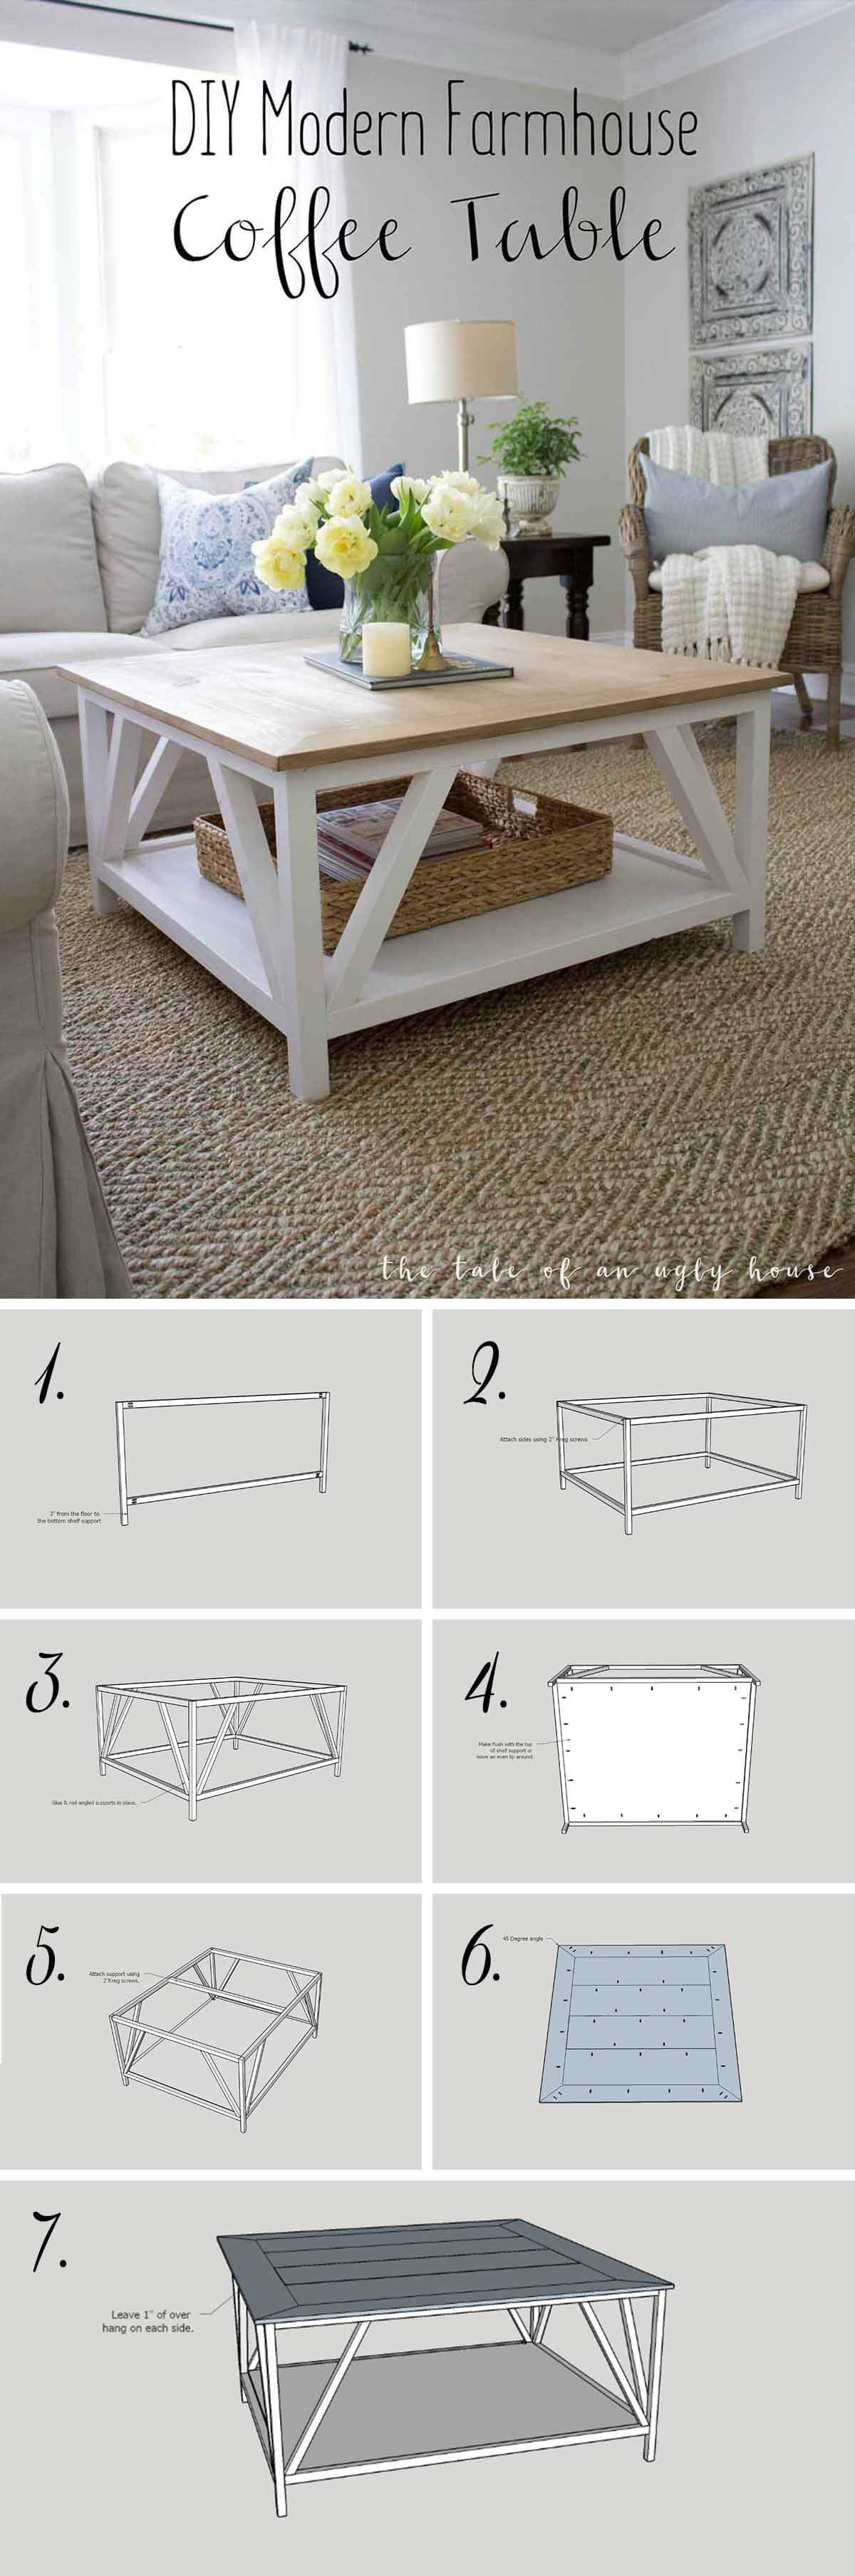 farmhouse coffee table ideas modern